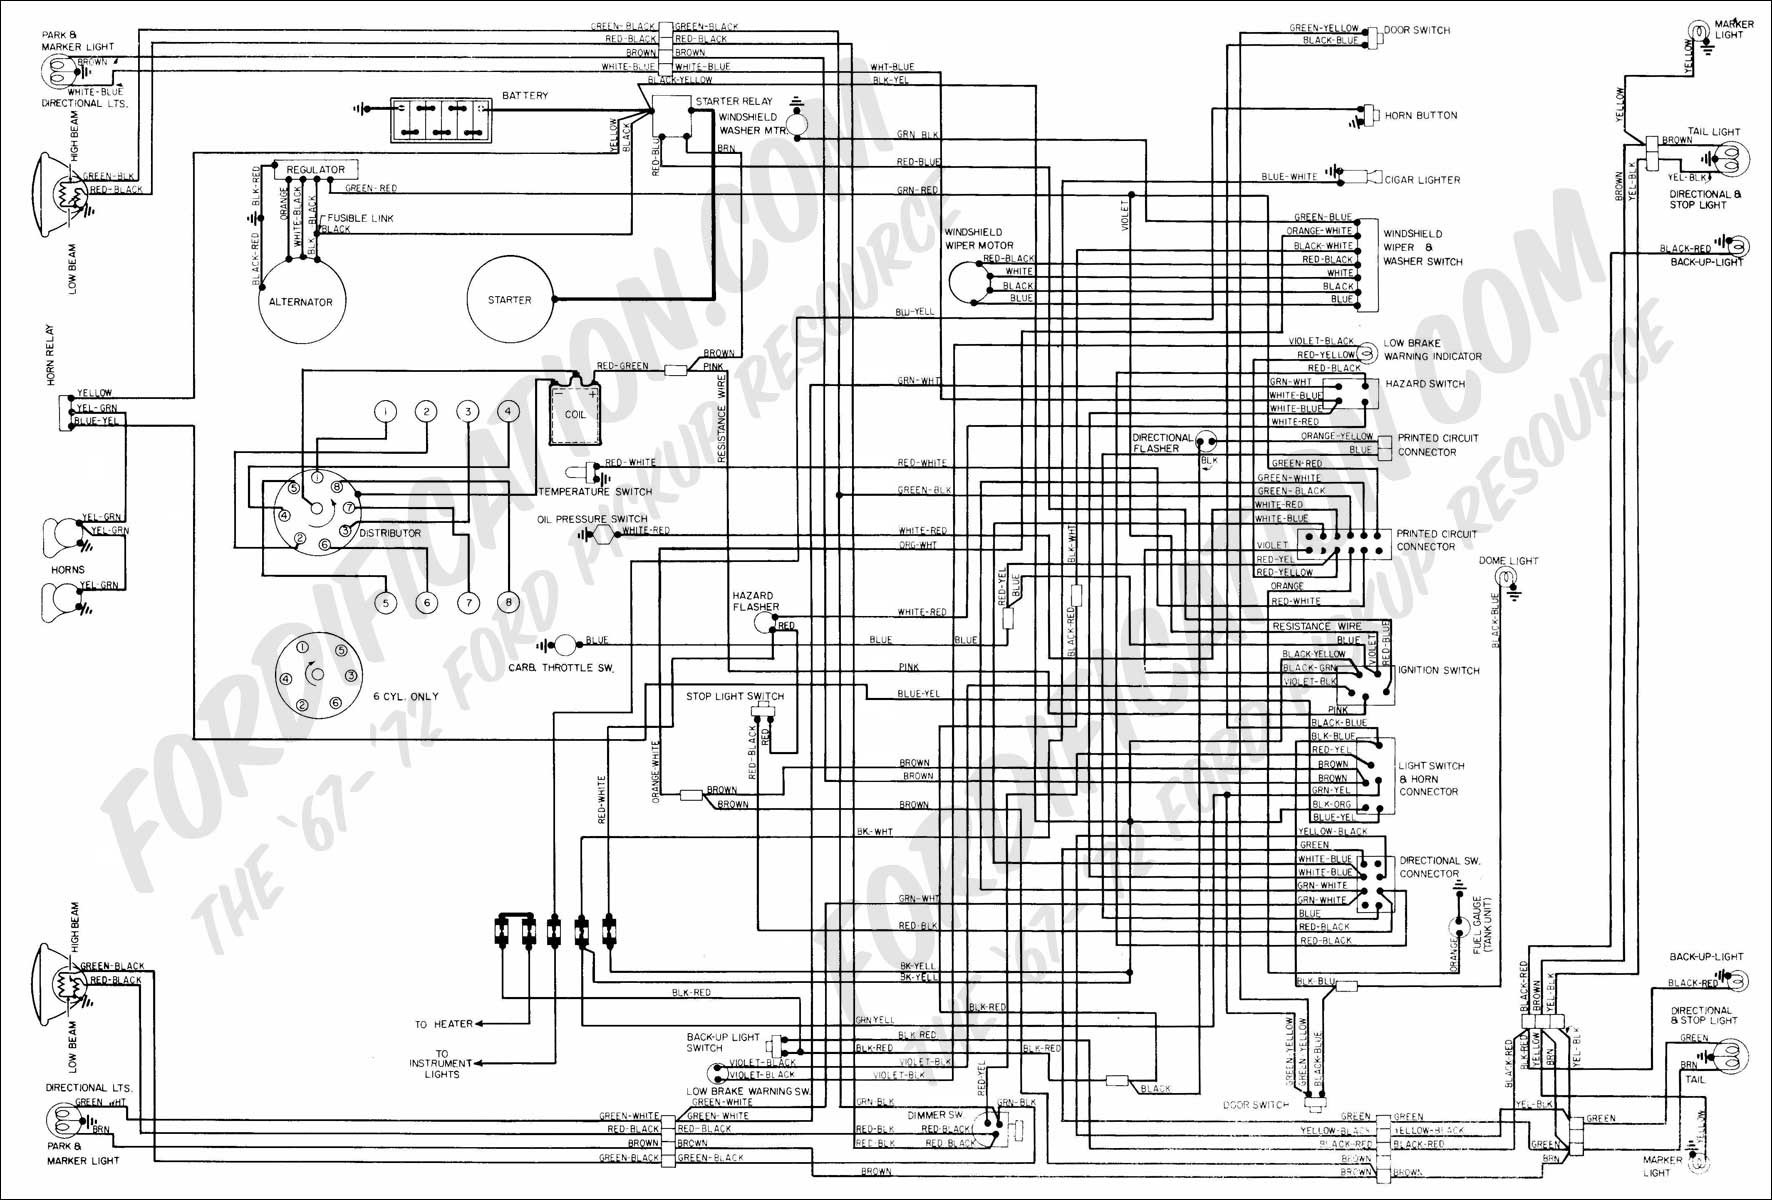 2003 Ford Windstar Wiring Diagram Headlamp 1999 For F150 1998 4 2 V6 Fuse Box